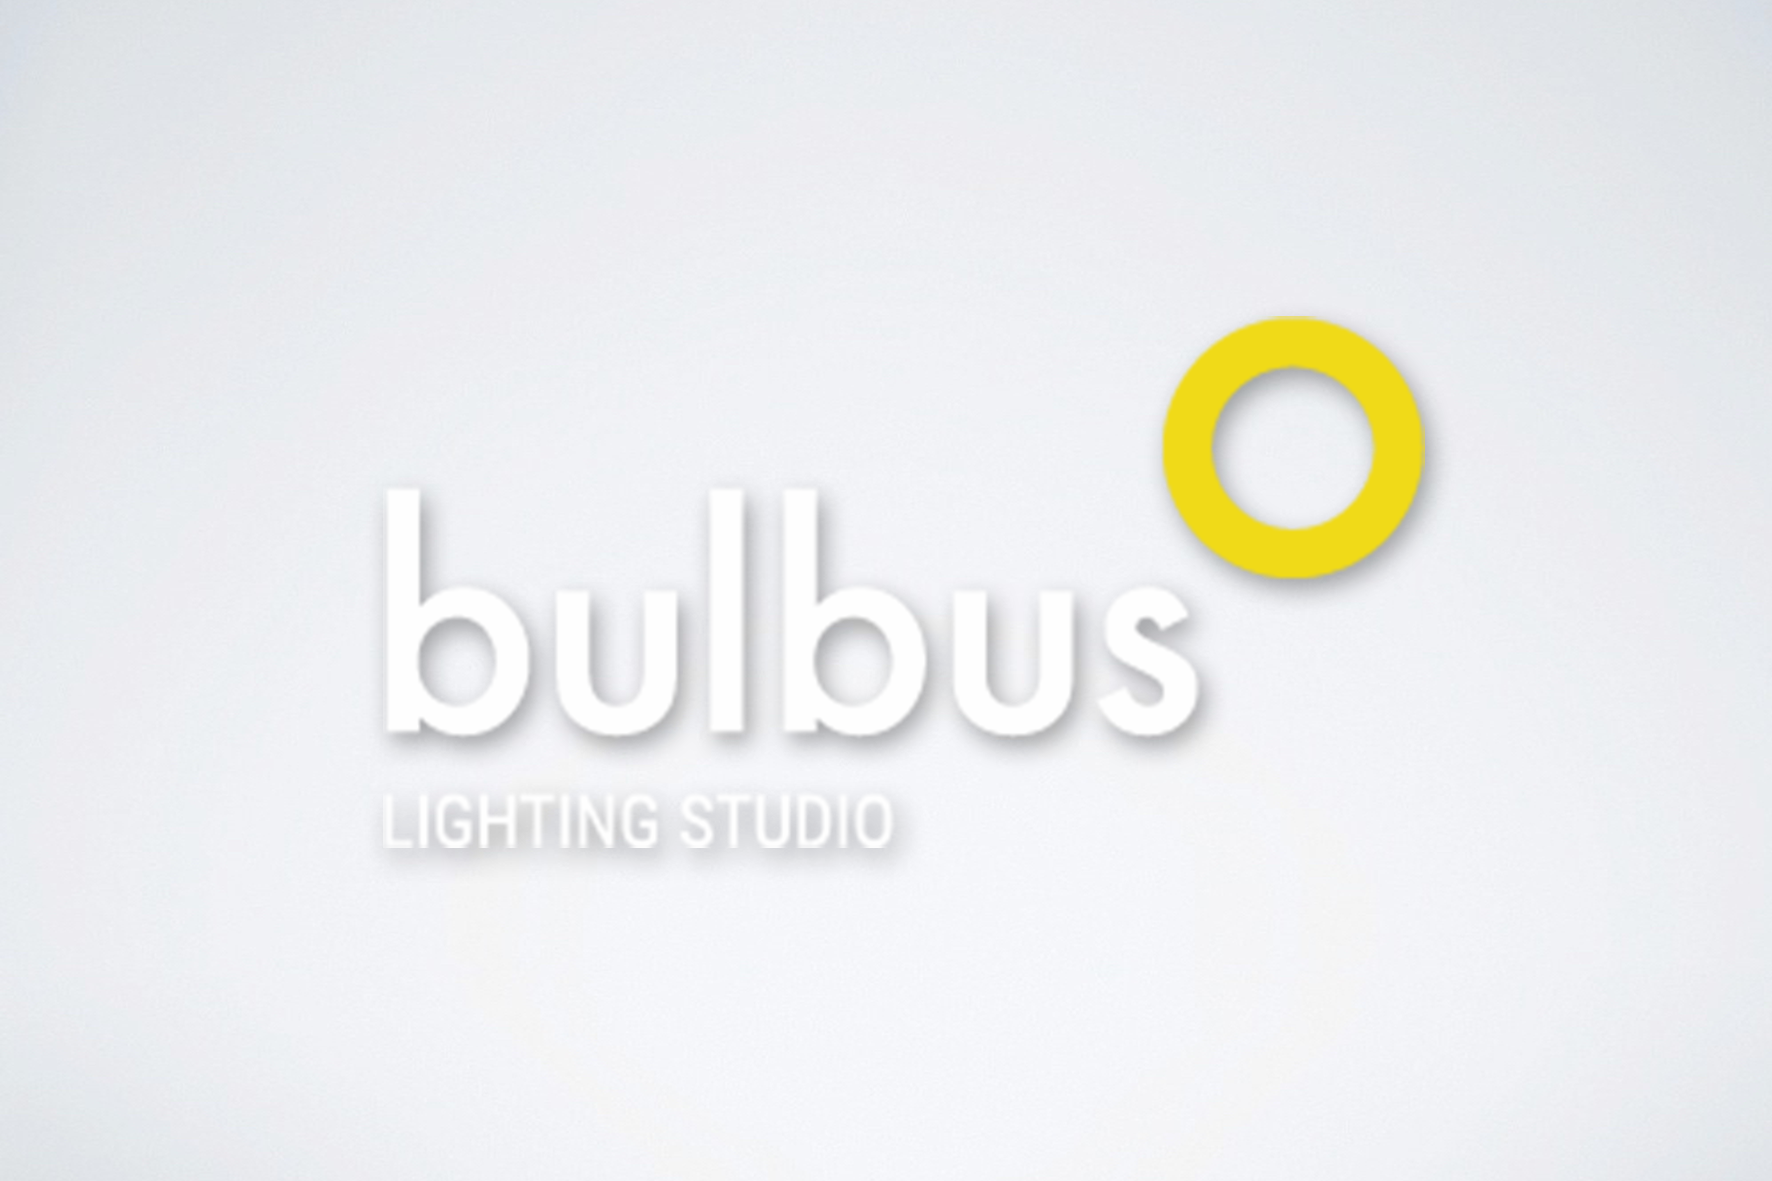 bulbus lighting studio